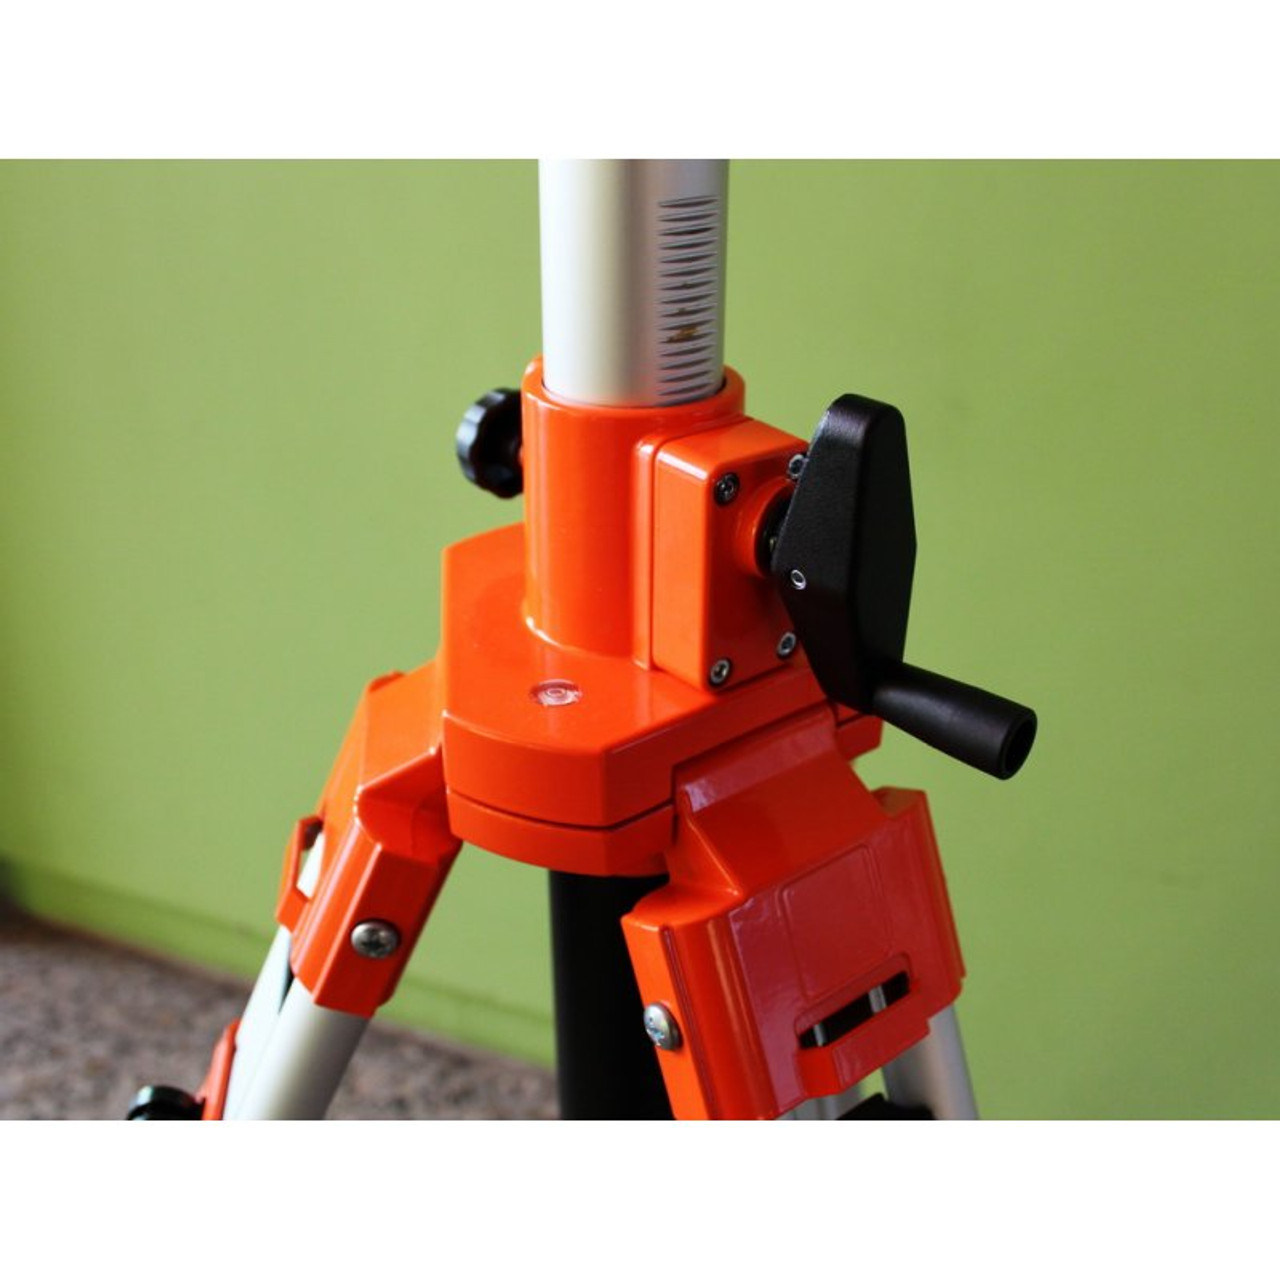 Extended crank for greater height